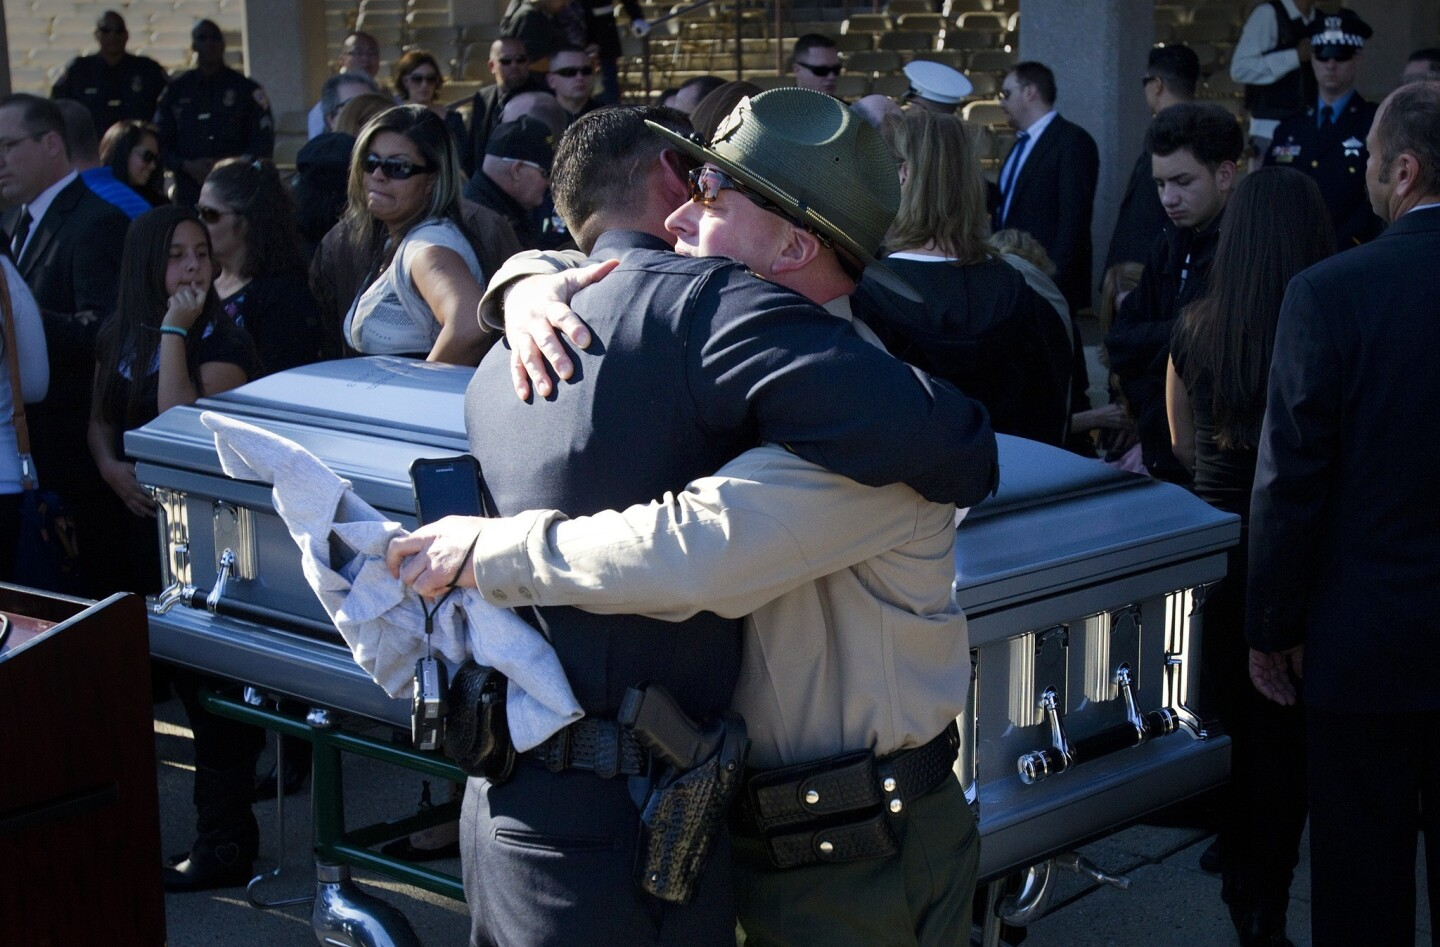 Law enforcement officers embrace at the casket of slain Riverside Police Officer Michael Crain after a memorial service at Riverside National Cemetery.